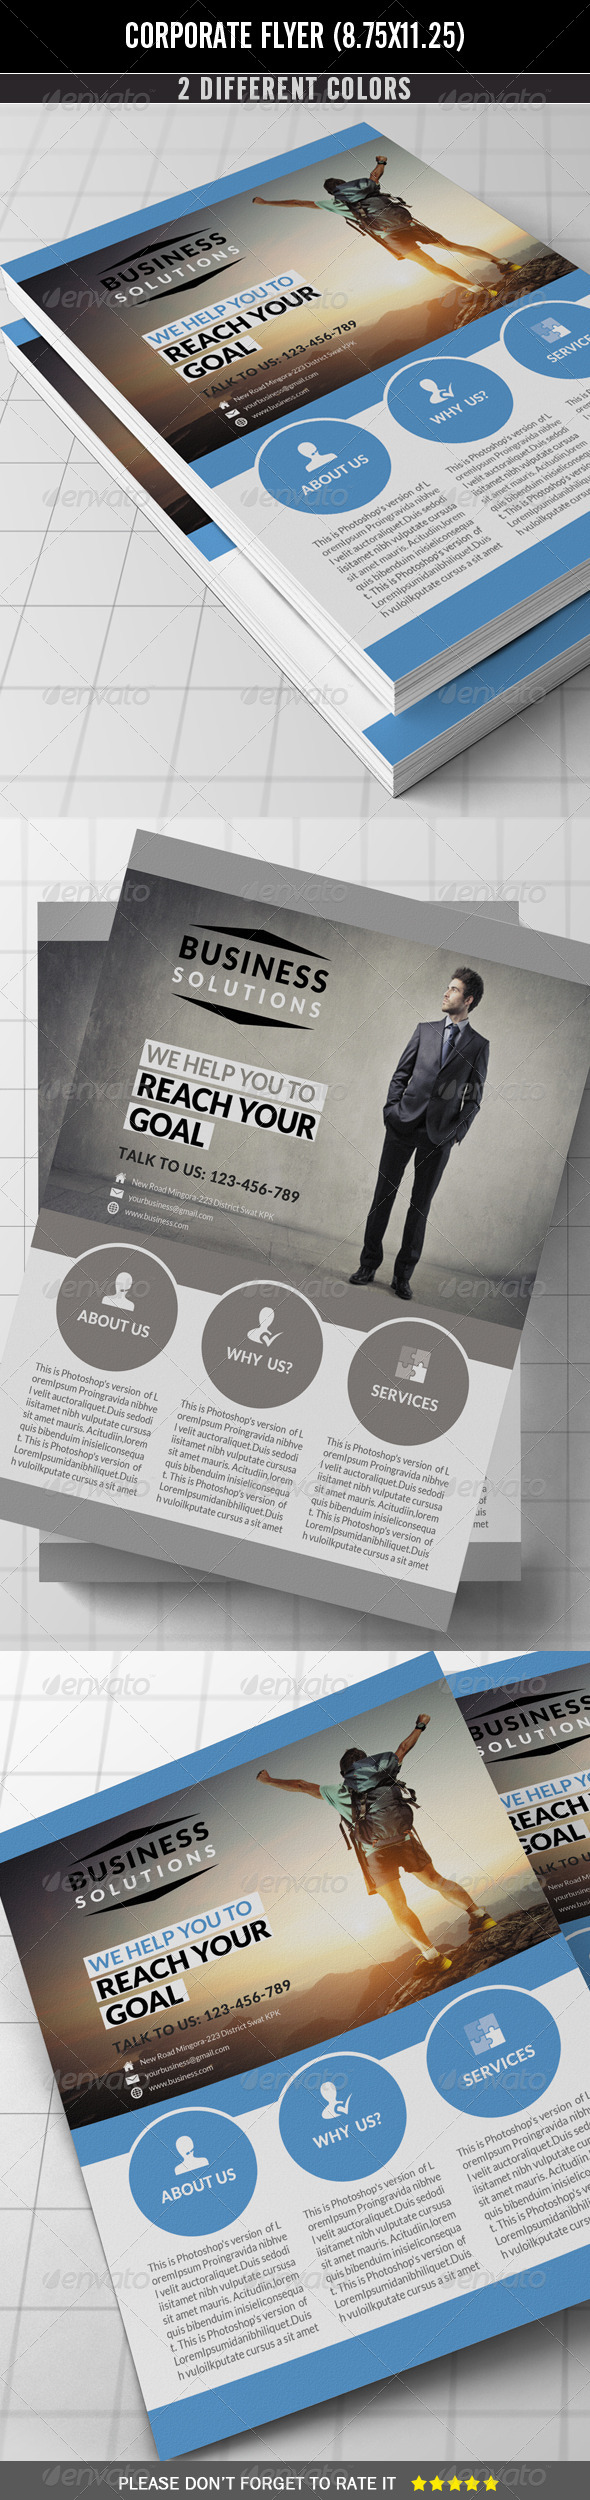 GraphicRiver Corporate Flyer 7464225